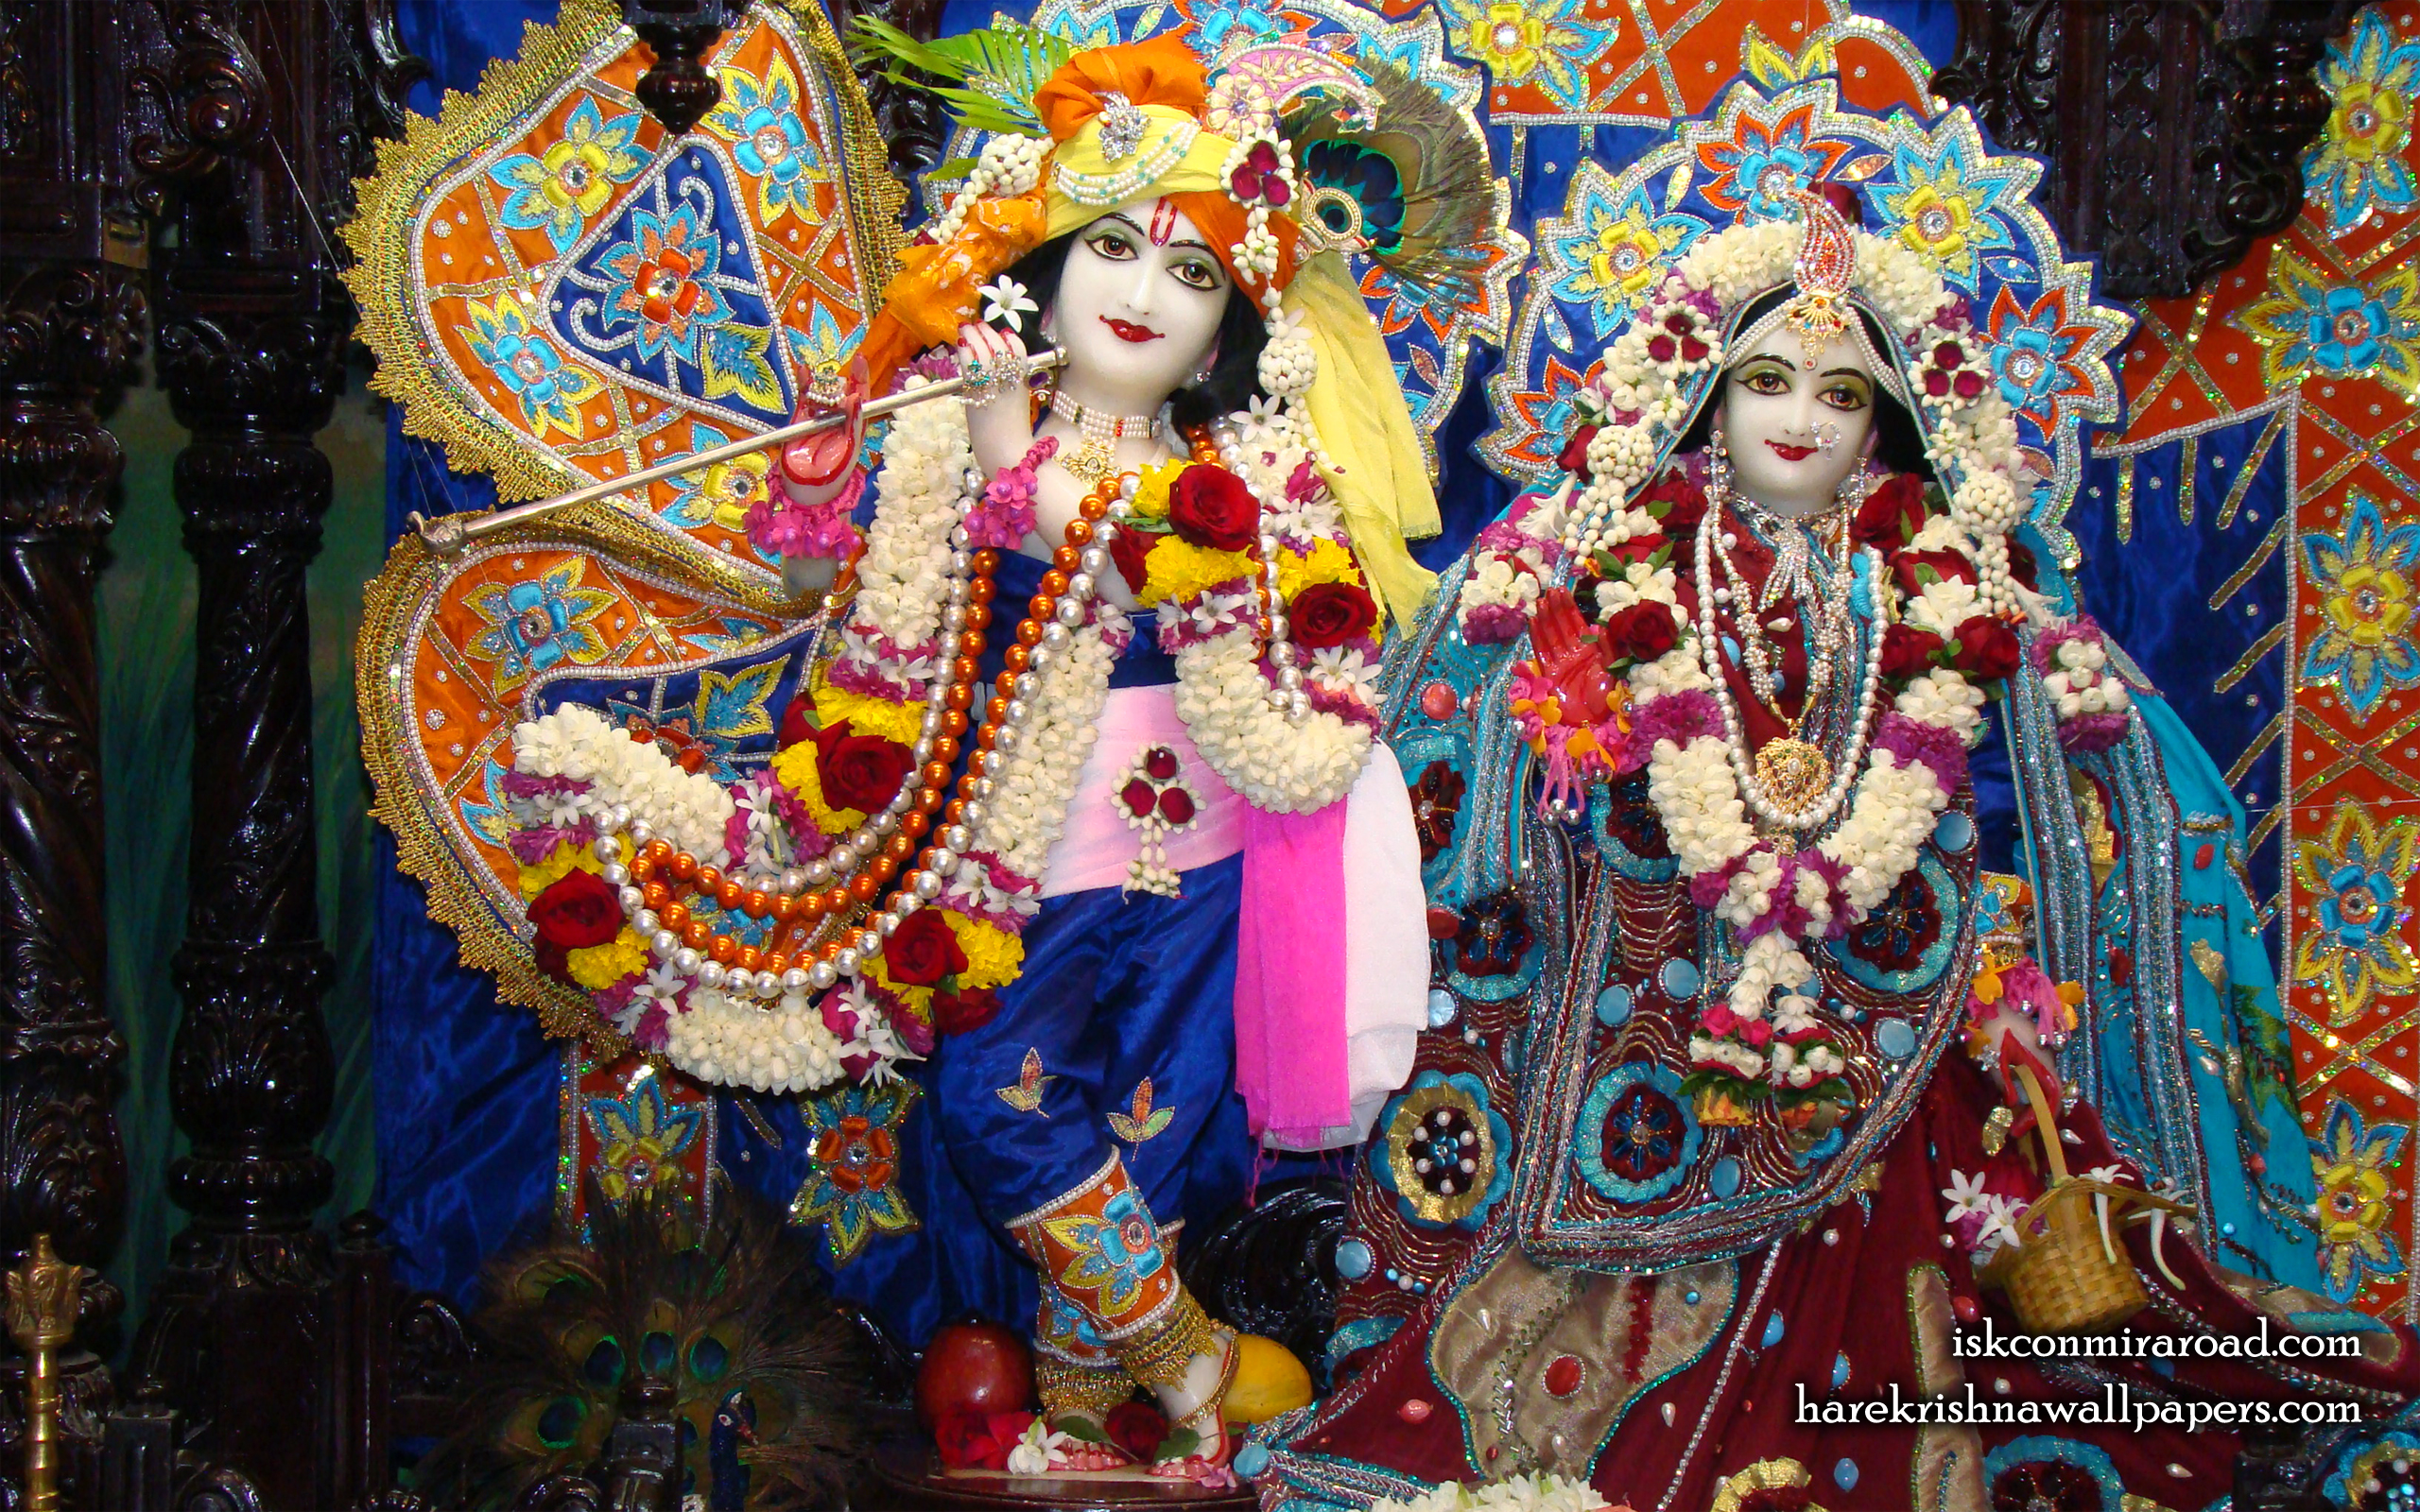 Sri Sri Radha Giridhari Wallpaper (018) Size 2560x1600 Download